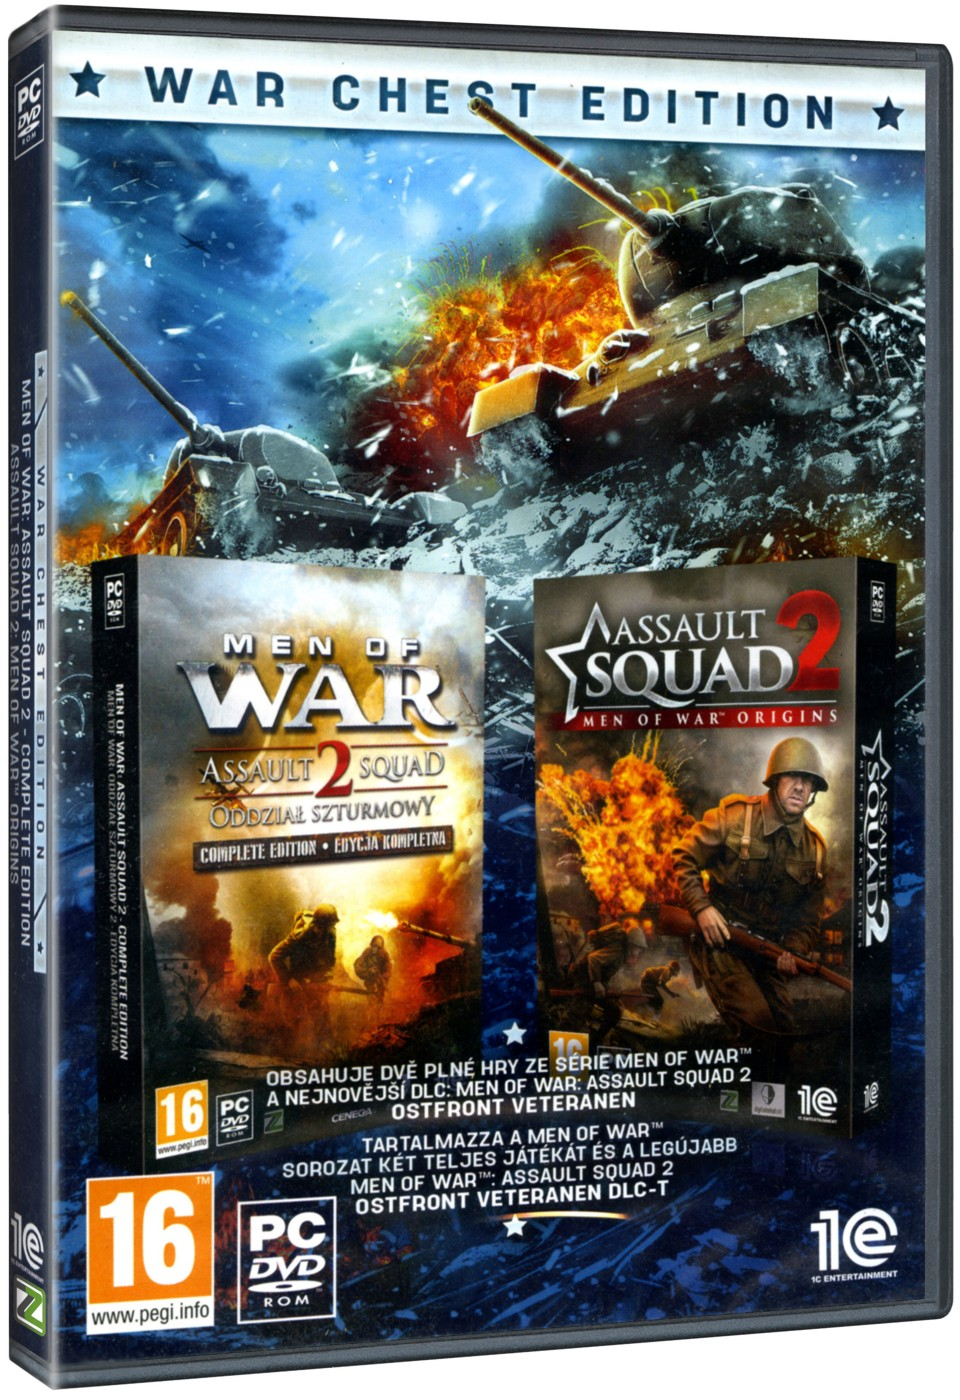 Men of War: Assault Squad 2 UE + Assault Squad 2 : Men of War Origins - PC